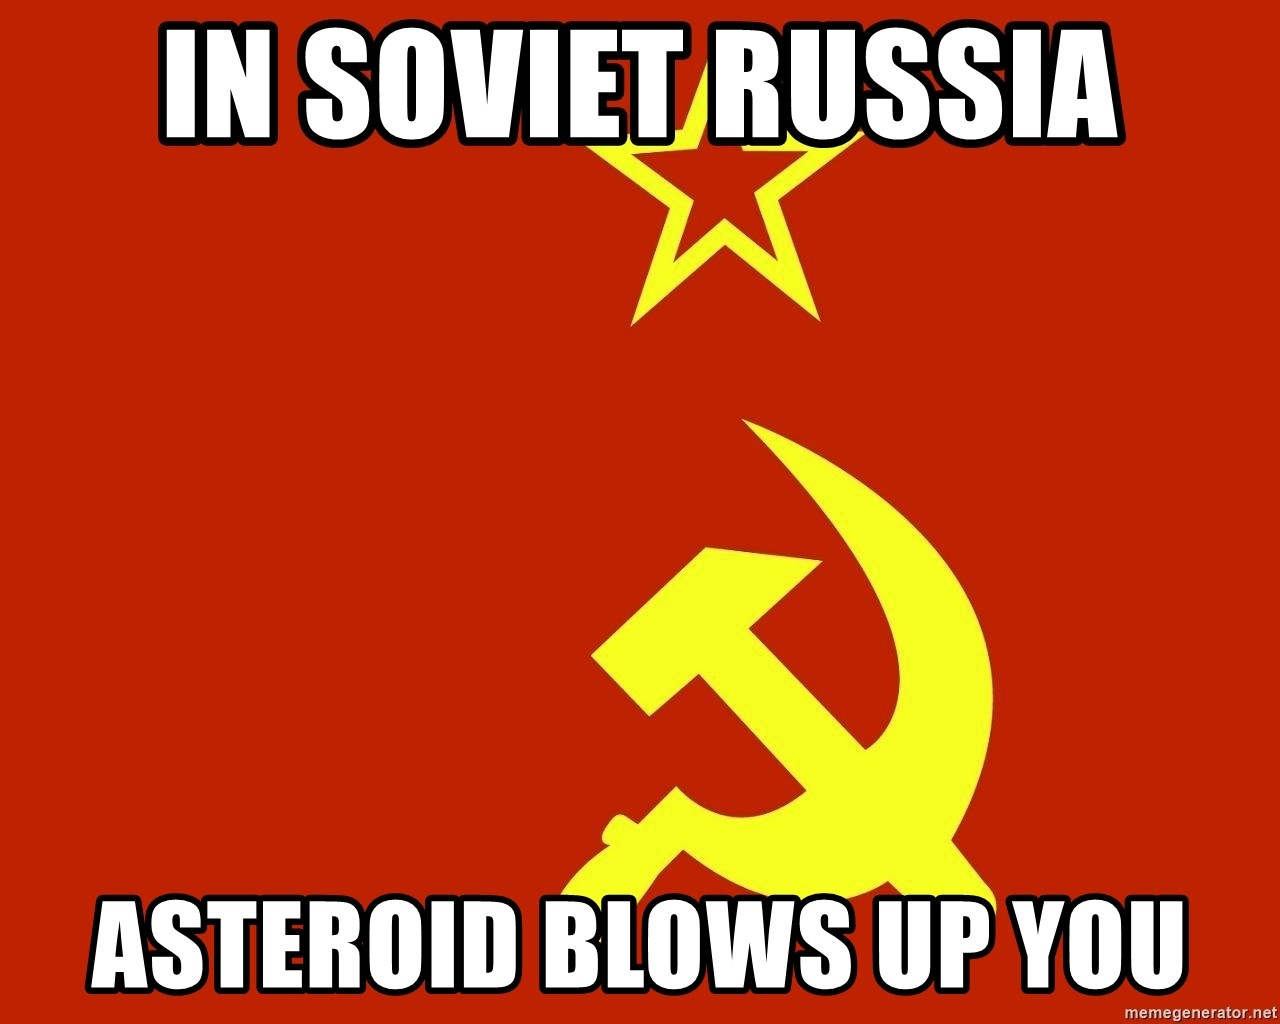 In Soviet Russia - in soviet russia asteroid blows up you